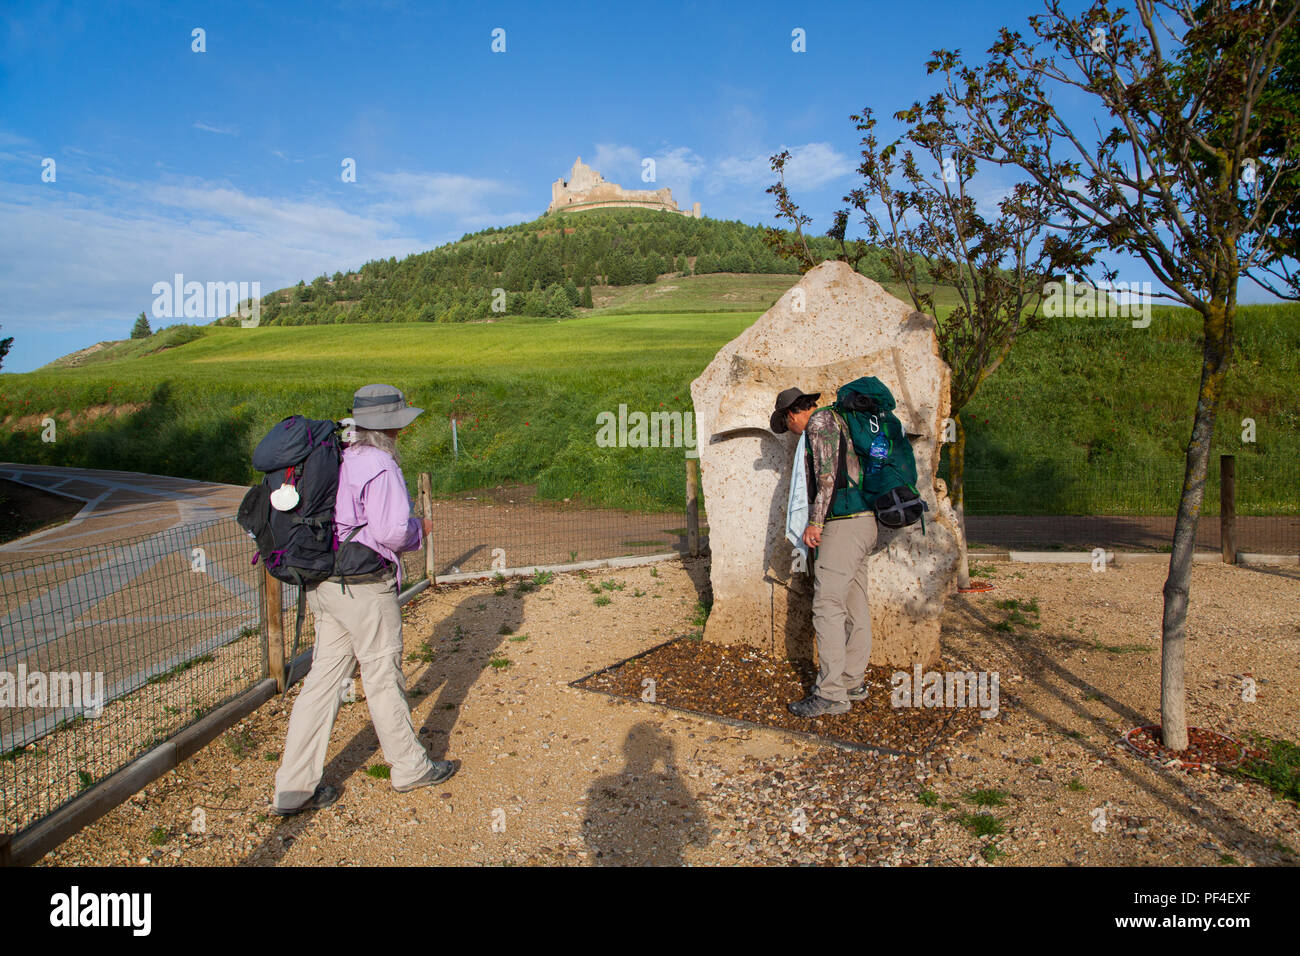 Pilgrims man and woman stopped to fill water bottles at a fountain in Castrojeriz while walking the Camino de Santiaga the way of St James Spain - Stock Image